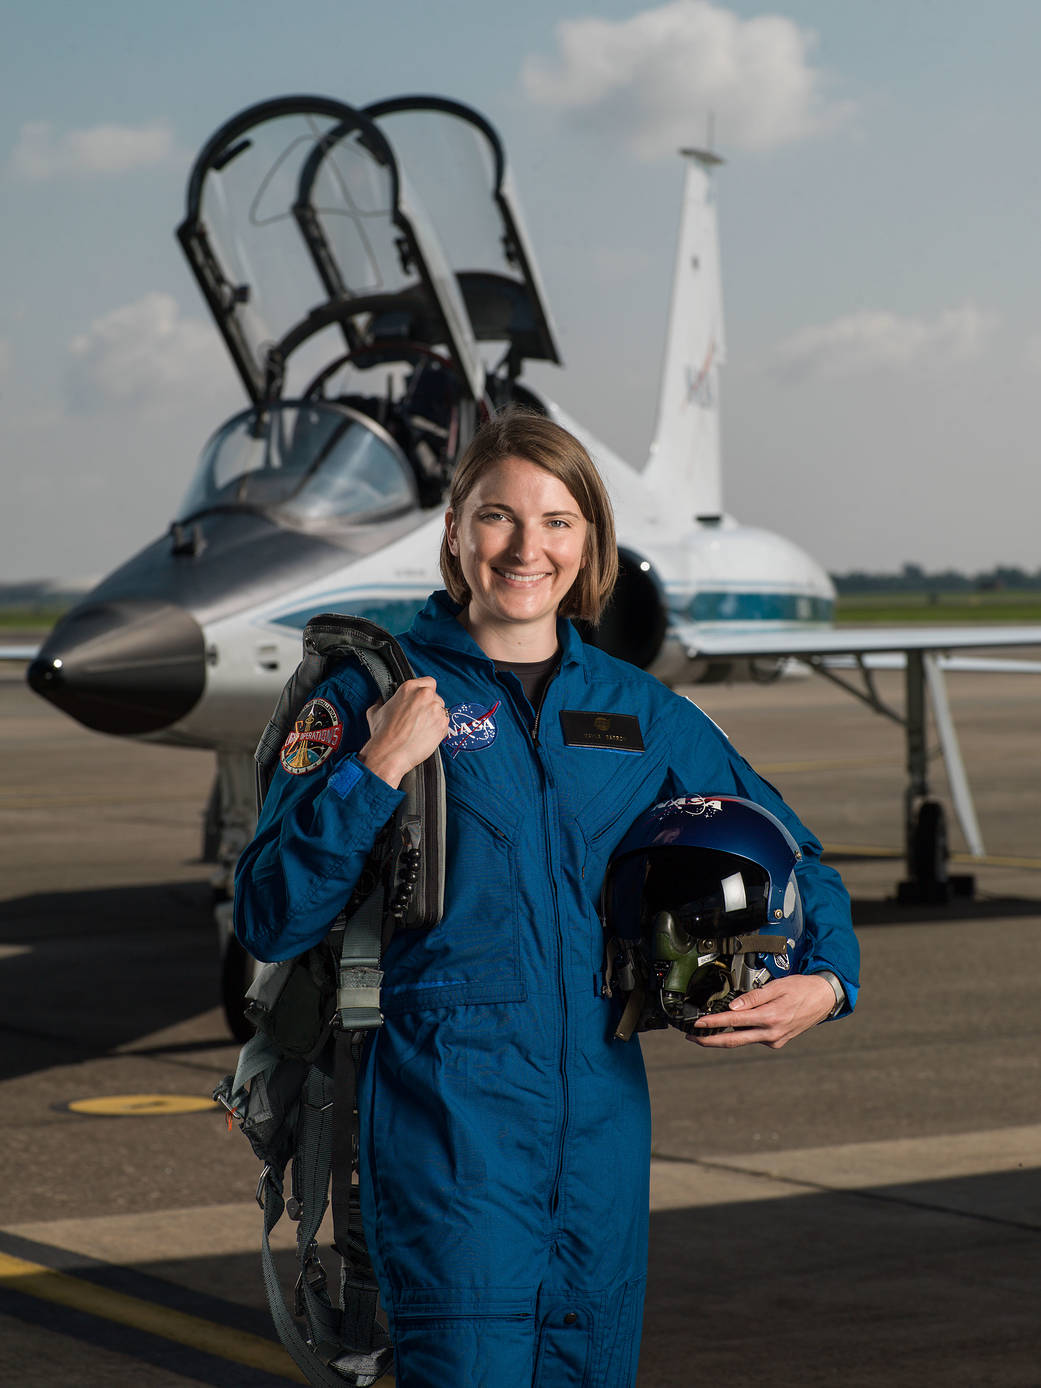 Scholar selected as NASA astronaut candidate